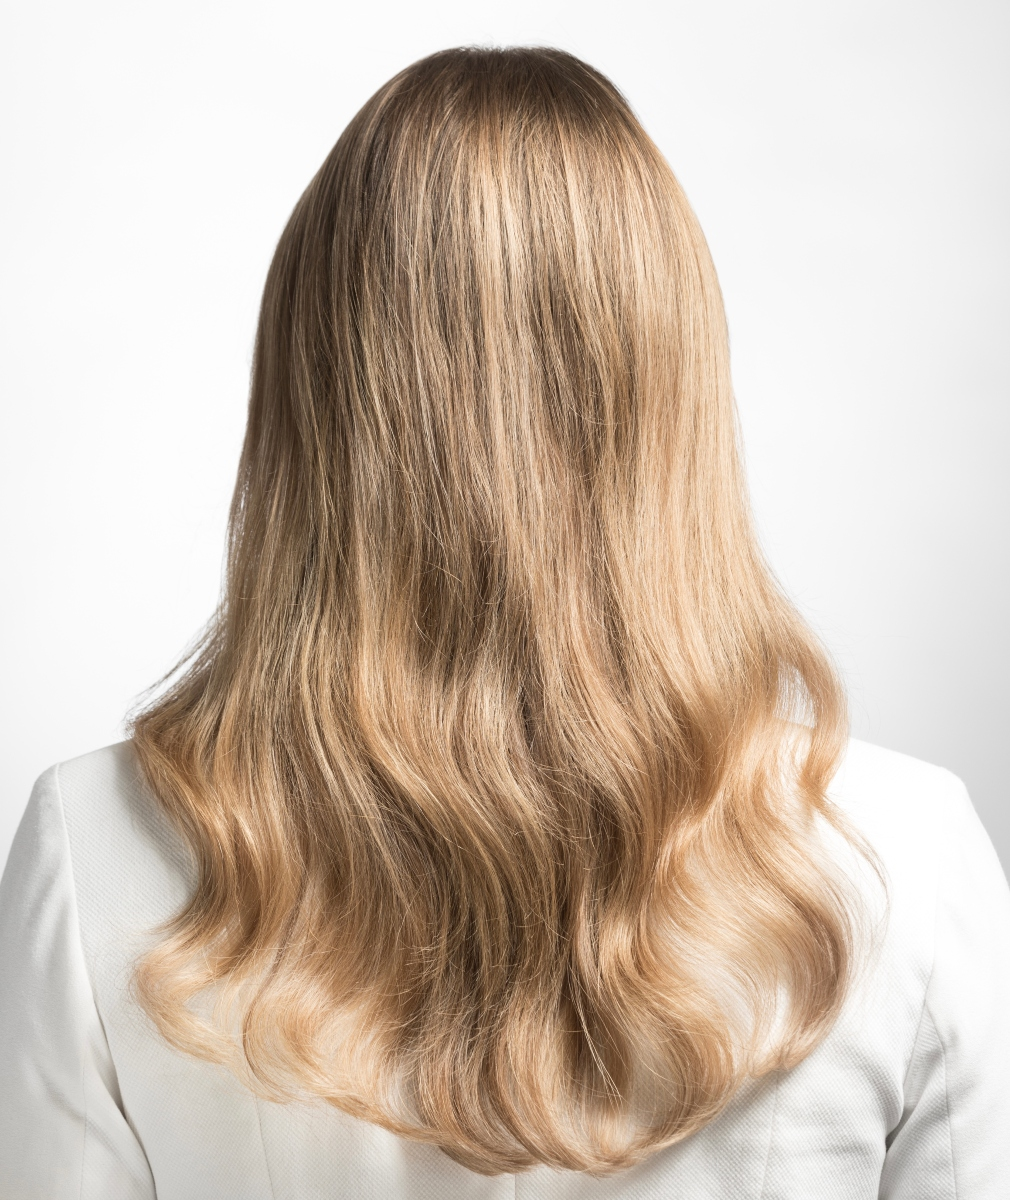 loreal-professionnel-style-colour-trophy-francia-dontosok-Zoe-Guers